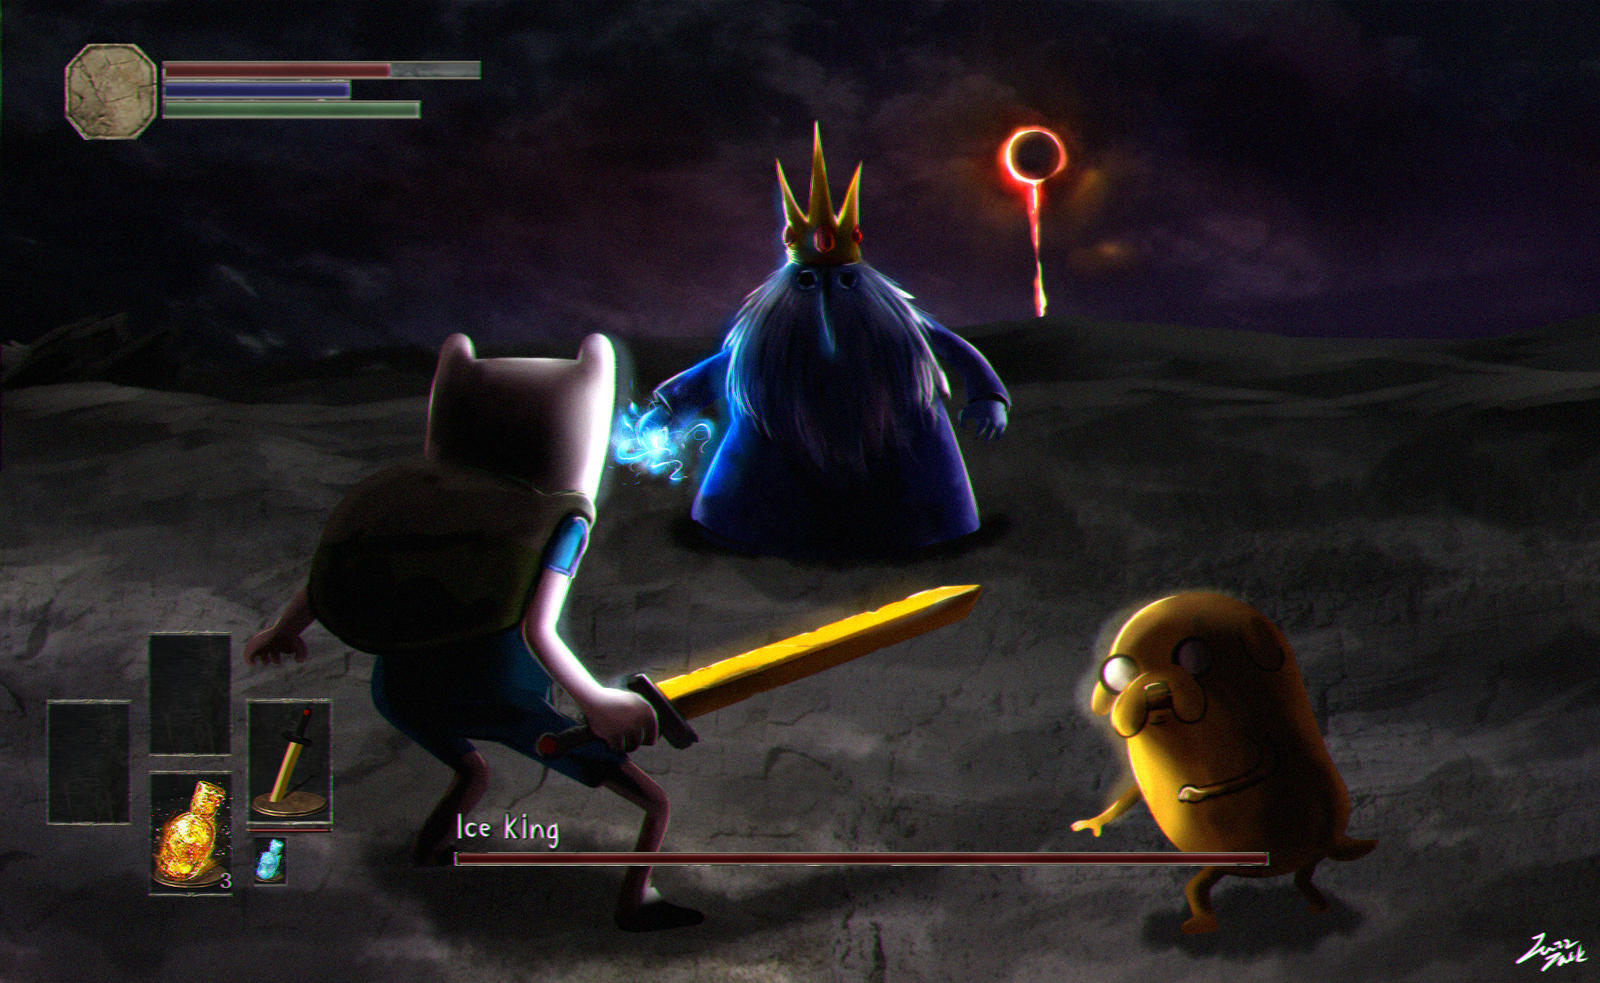 , The final L&B wallpaper for 2015 is a lovely... |Dank Souls Adventure Time